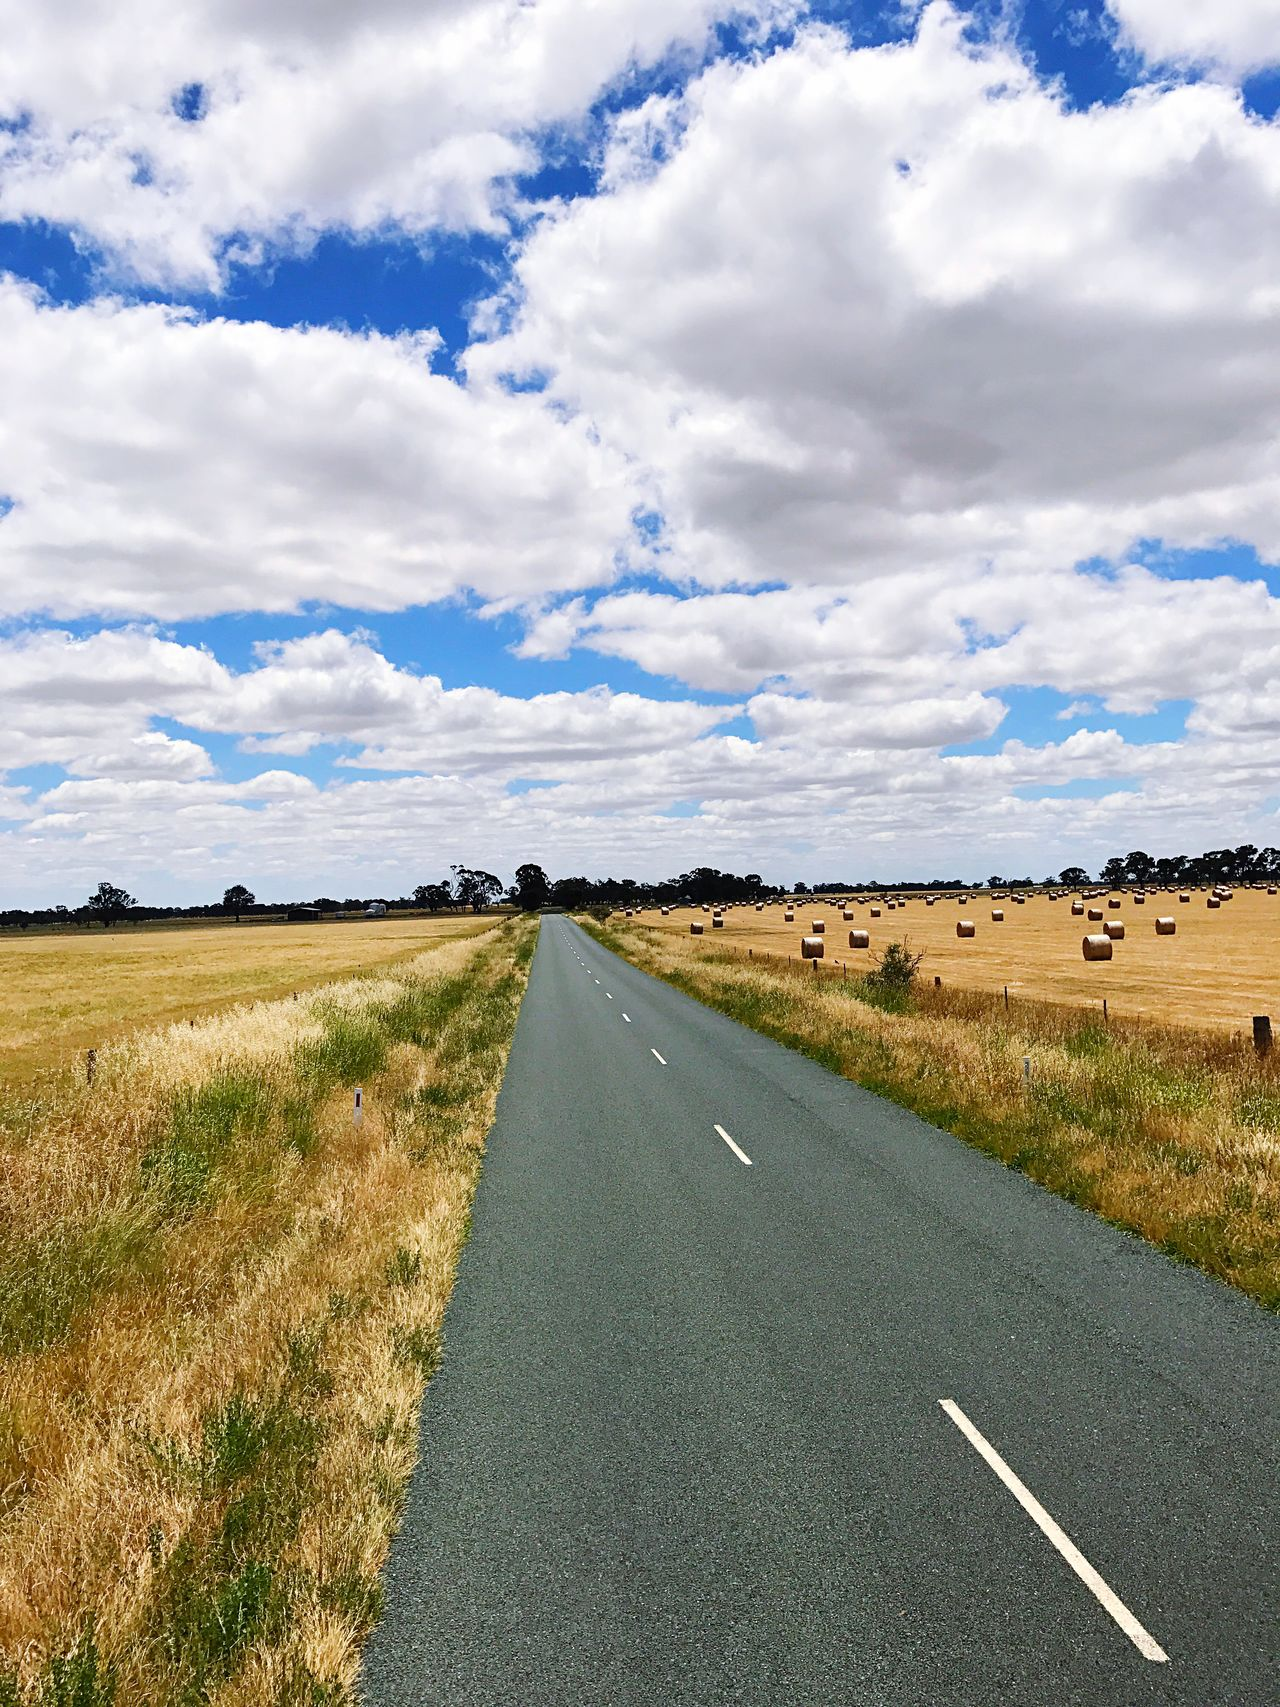 Cloud - Sky Sky Road Landscape The Way Forward Nature Scenics Transportation Haystack Street No People Outdoors Day Grass Beauty In Nature